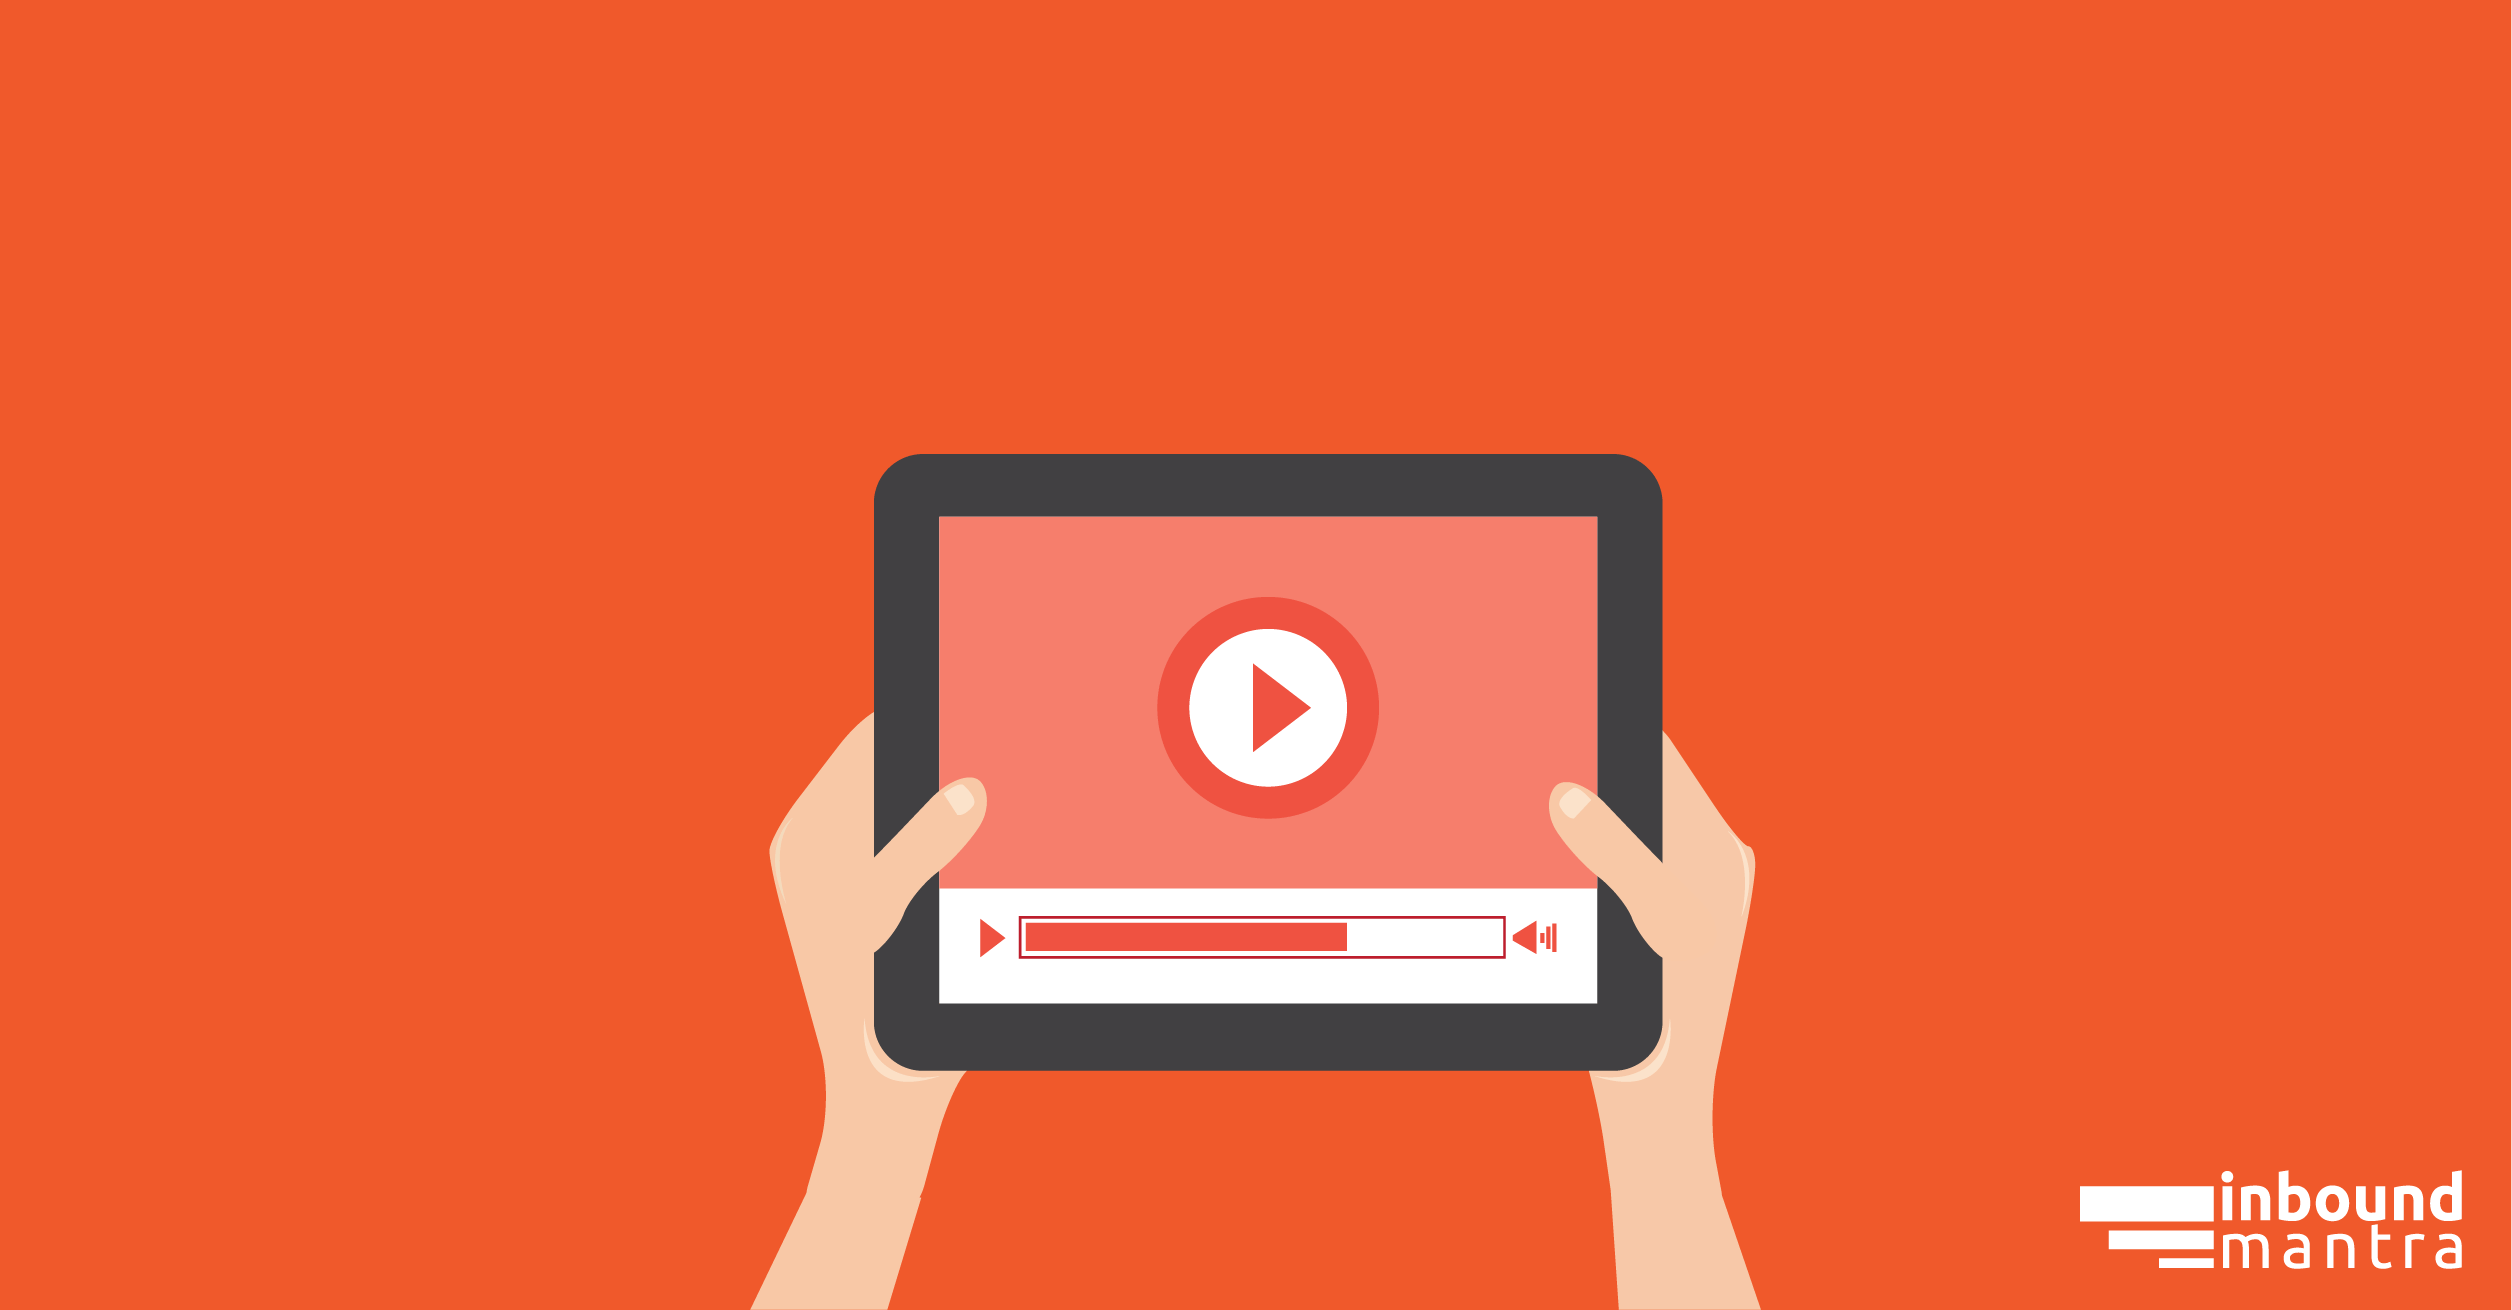 One Online Video a Day per Human Being